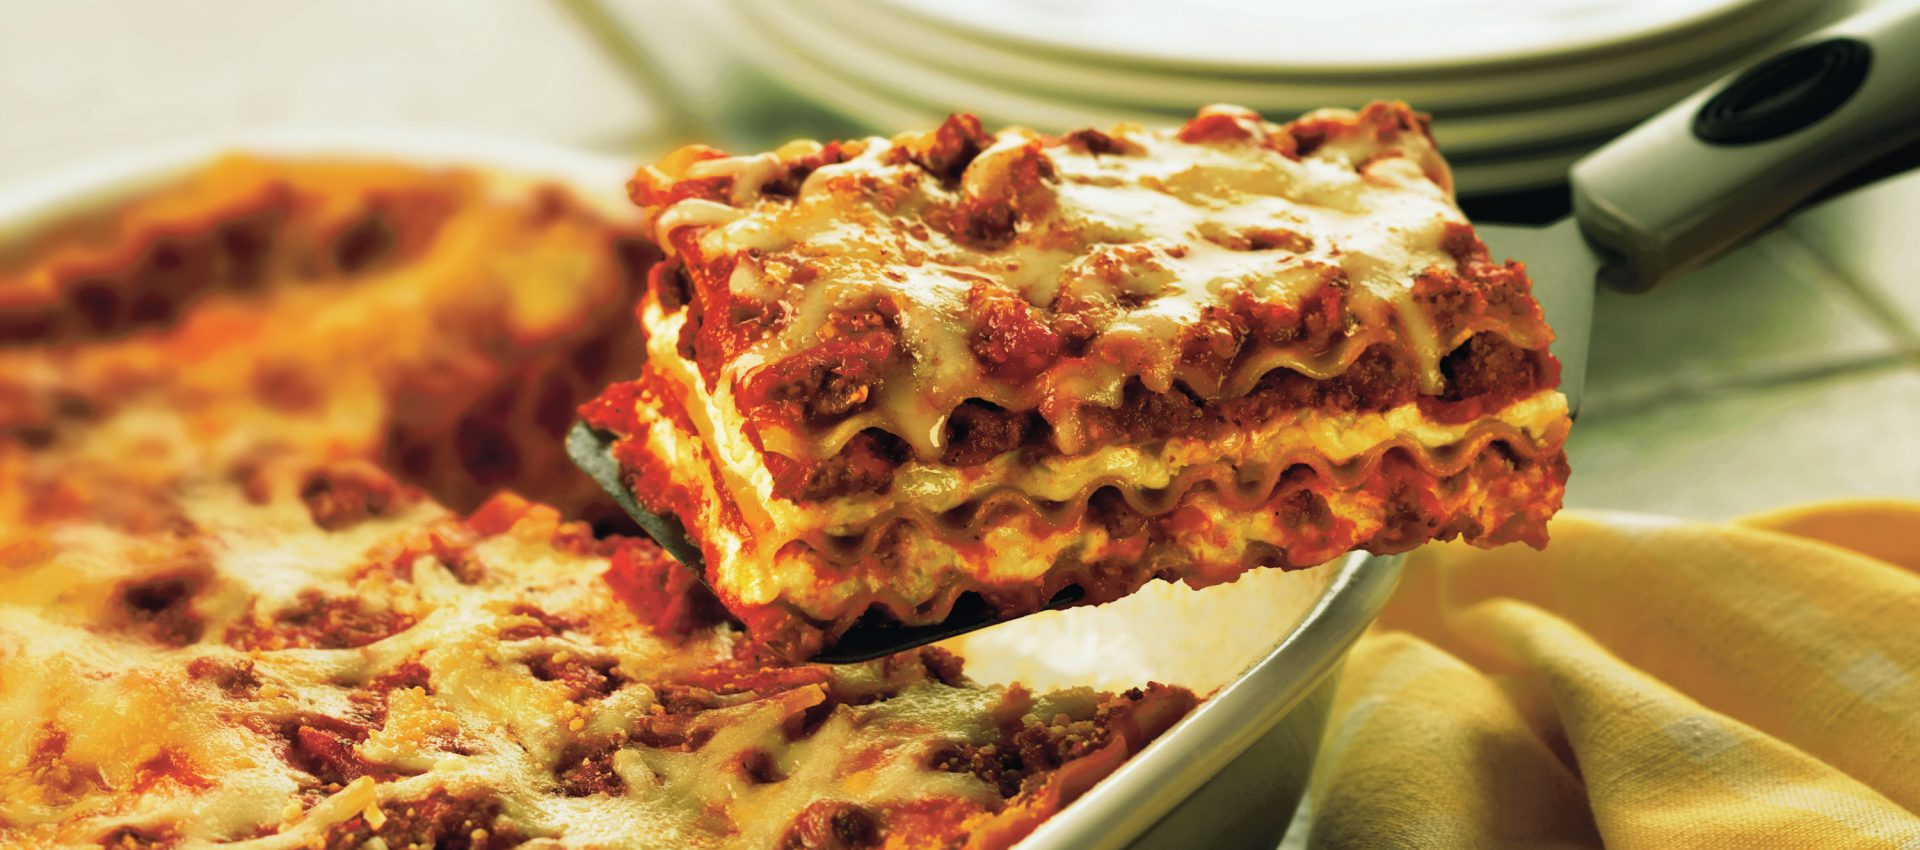 Classic sausage lasagna with layers of noodles, tomato sauce, Italian sausage, and cheese